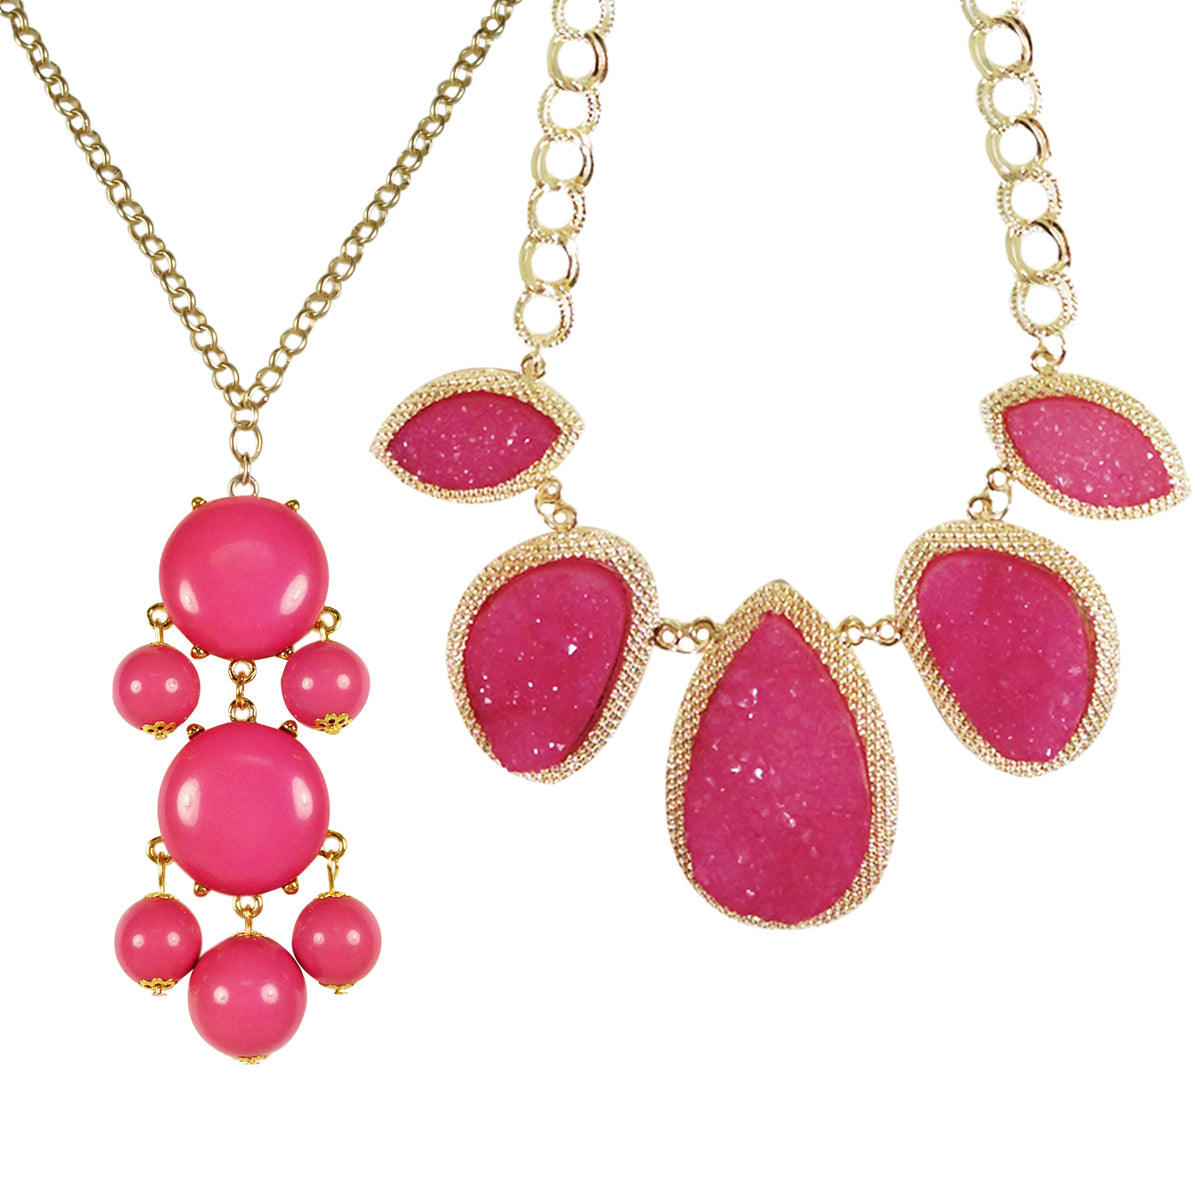 Hot Pink Beaded Bubble Pendant Necklace + Stone Necklace